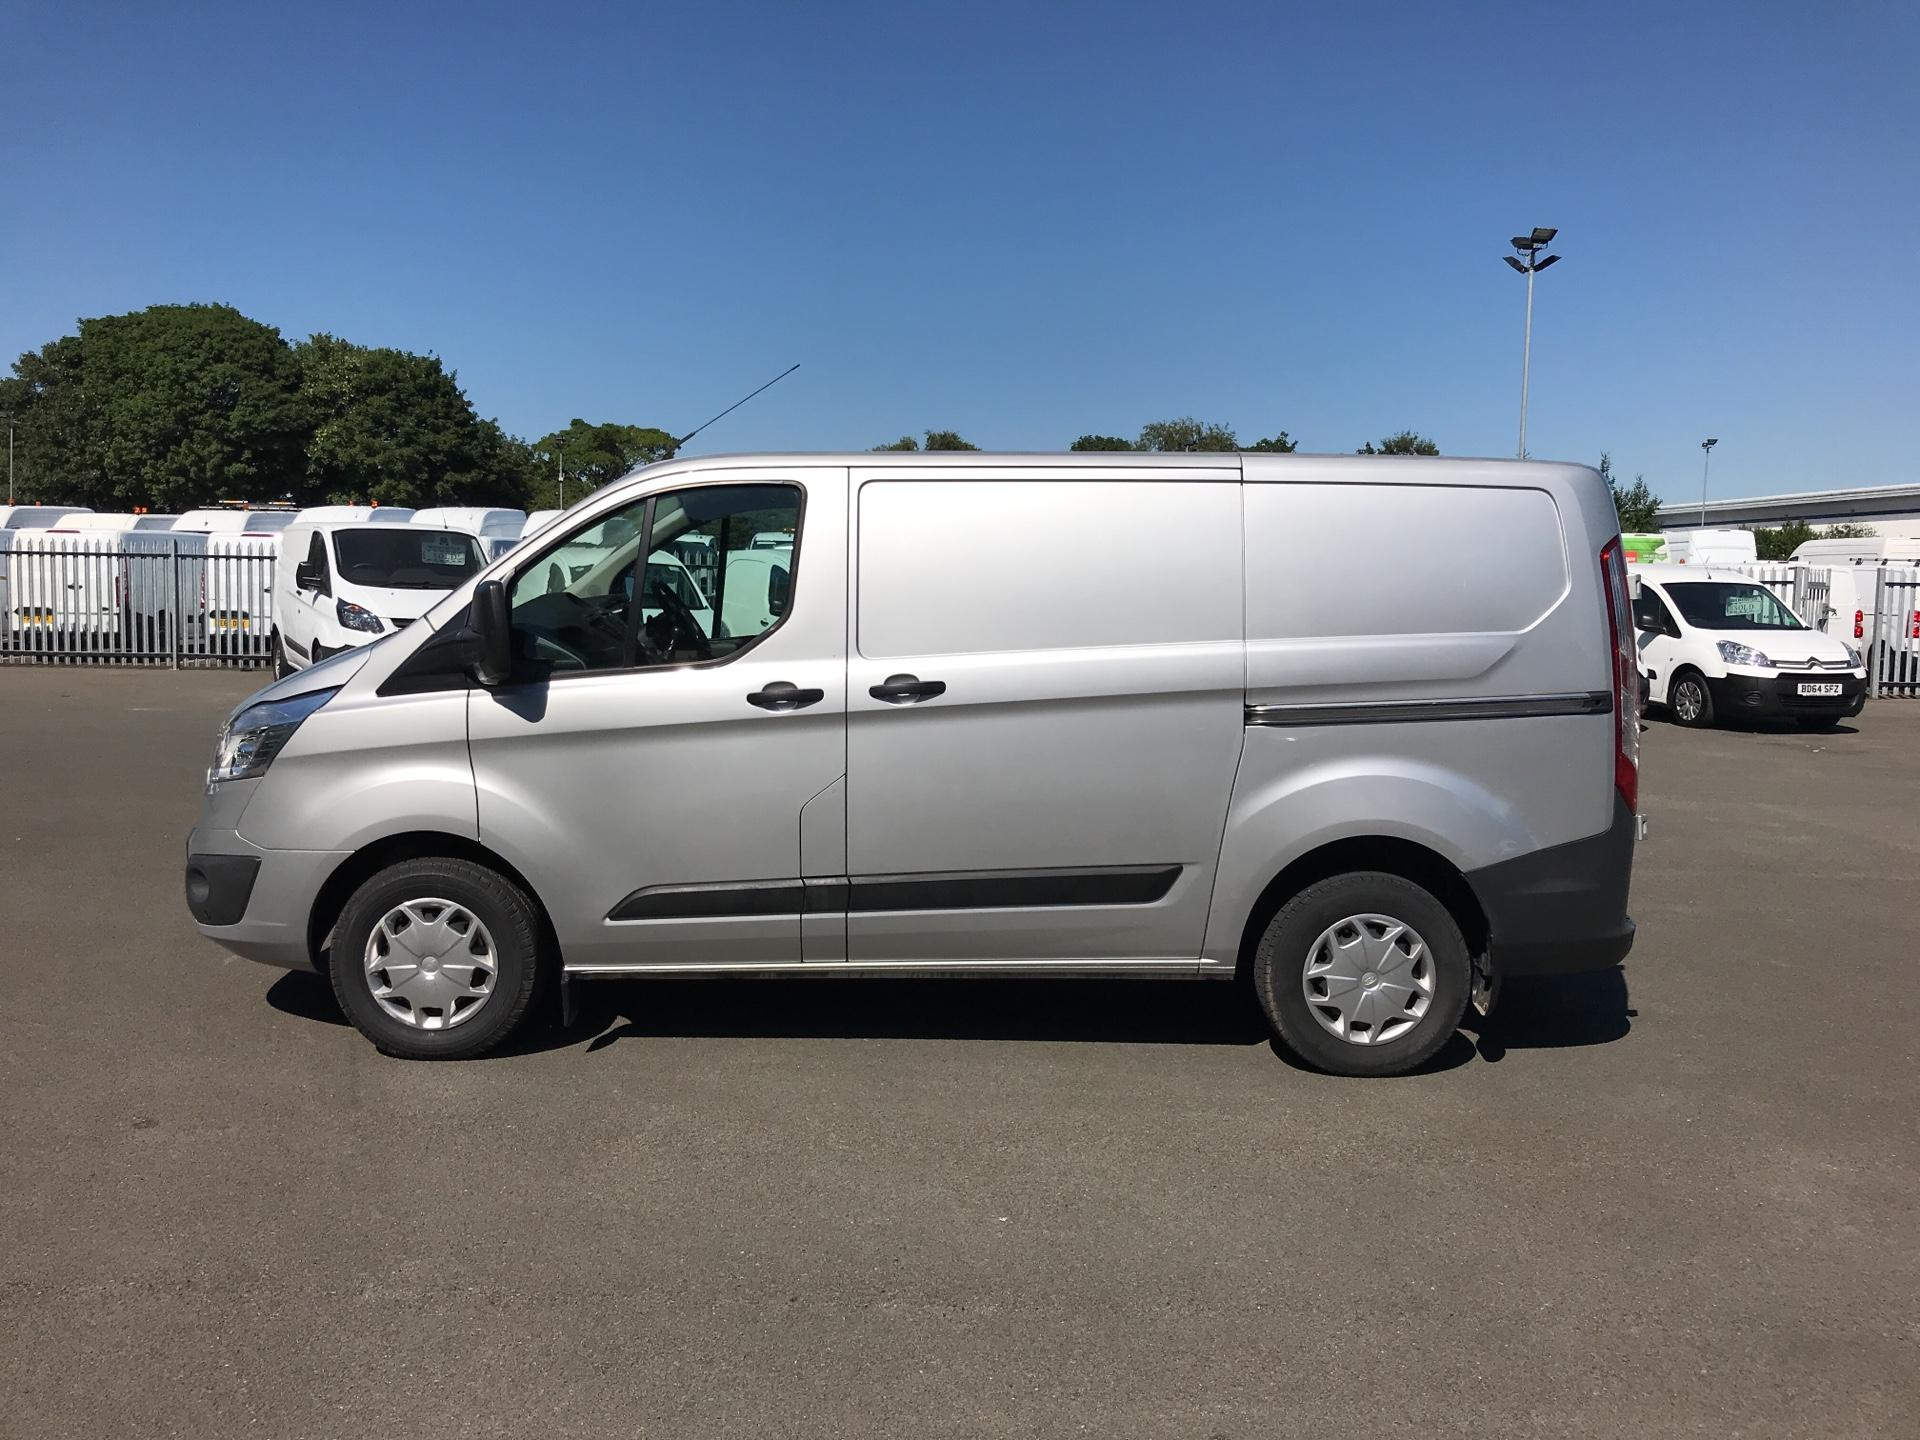 2016 Ford Transit Custom 270 L1 DIESEL FWD 2.2 TDCI 130PS LOW ROOF TREND VAN EURO 5 (DL66HCP) Thumbnail 6